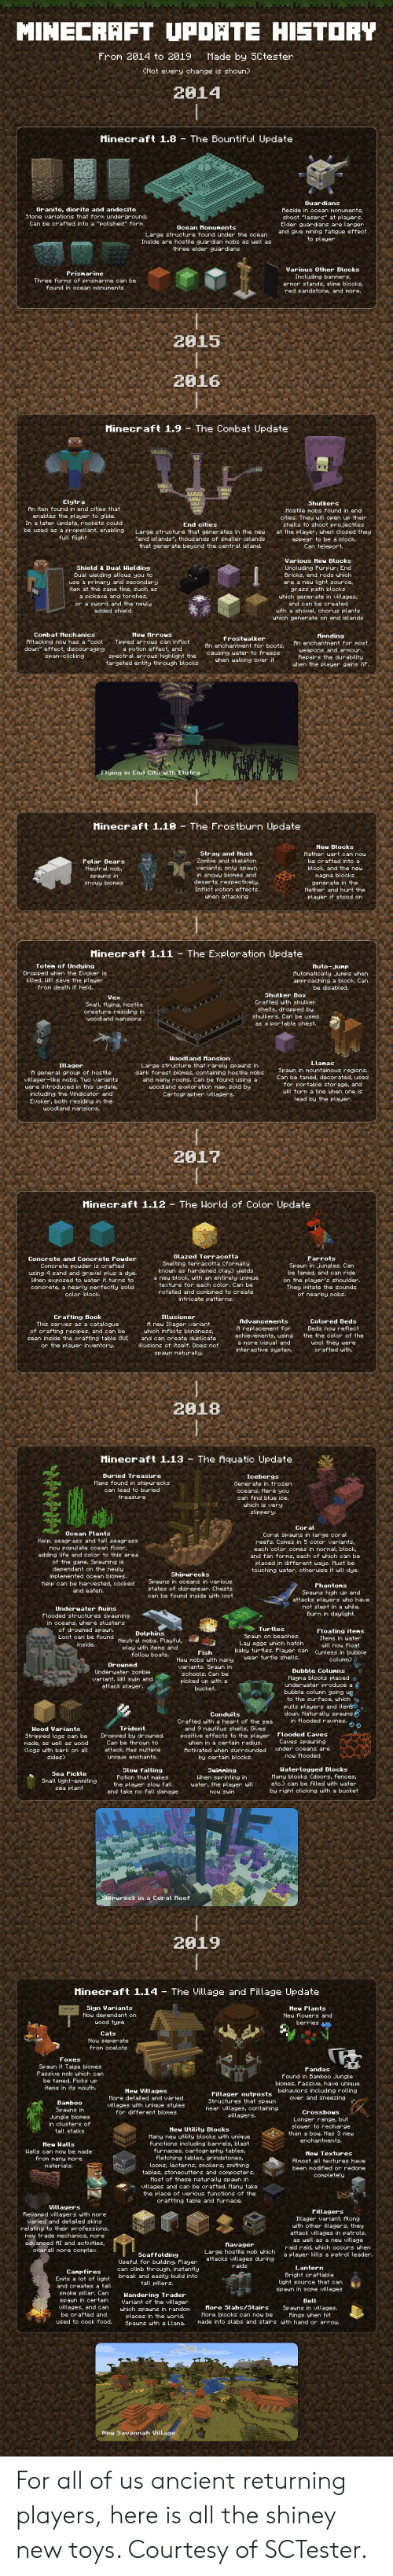 HISTORY MINECRAFT UPDHTE Made by SCtester From 2914 to 2019